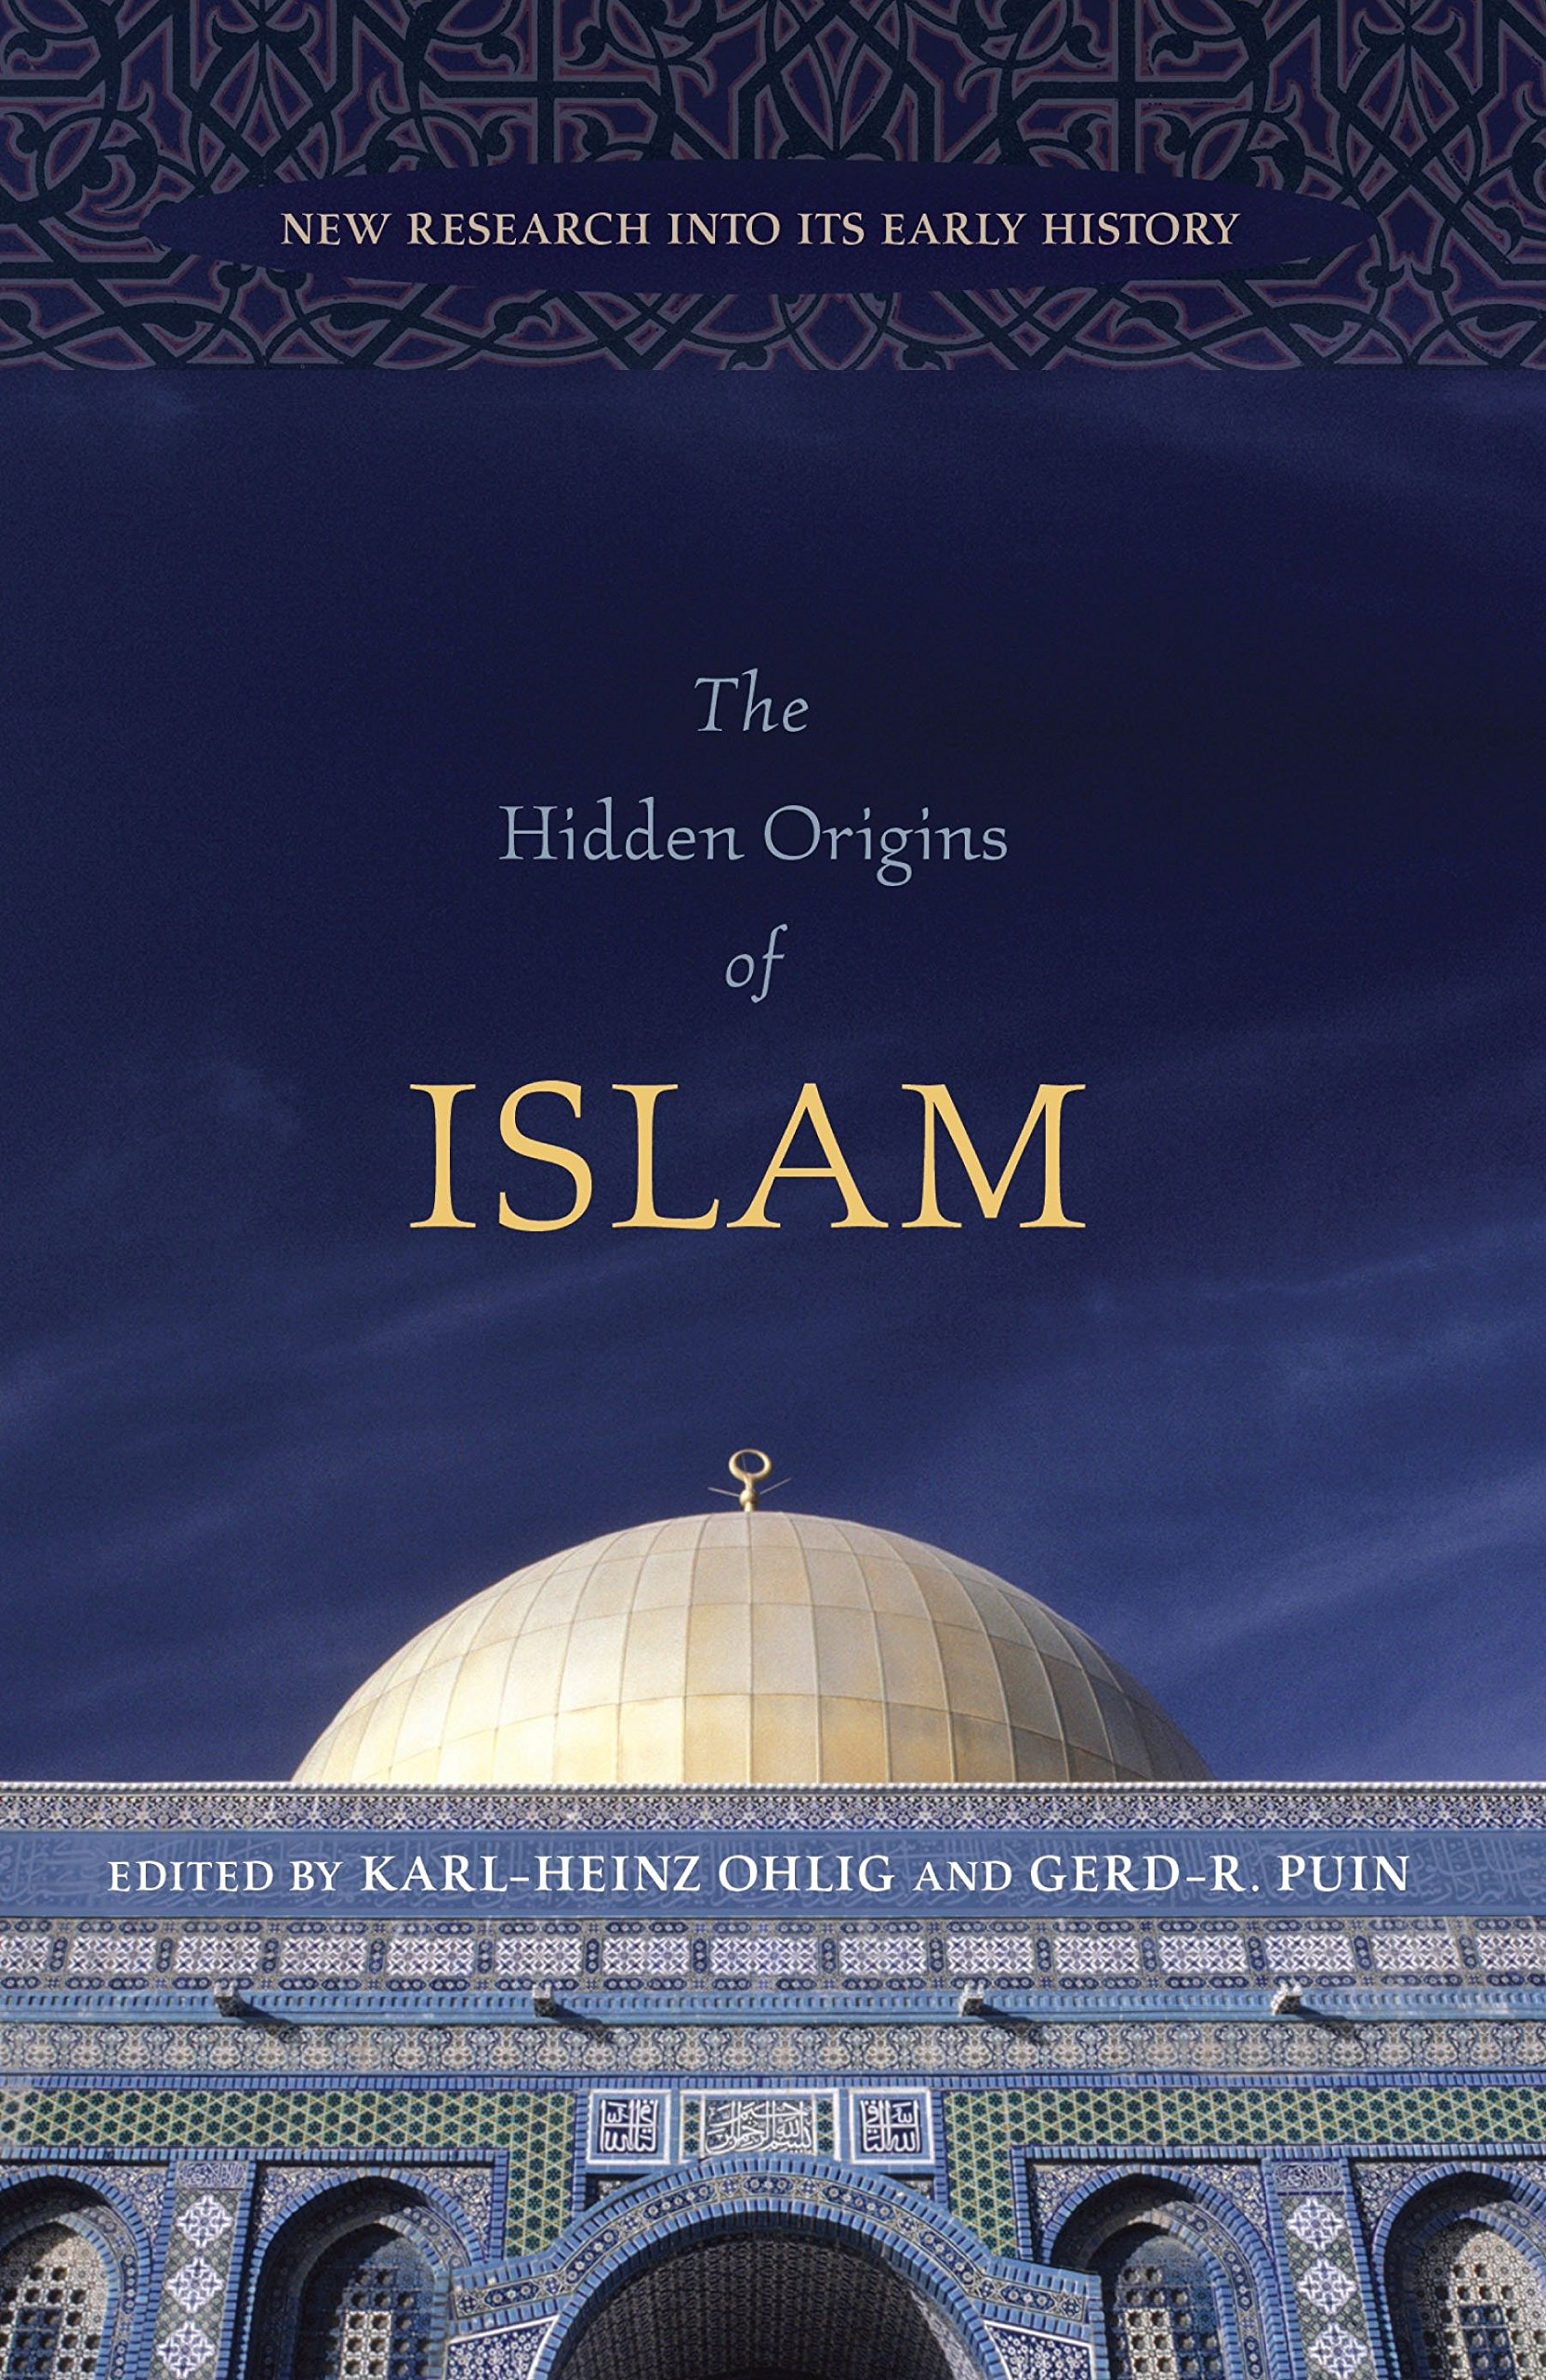 The Hidden Origins of Islam: New Research into Its Early